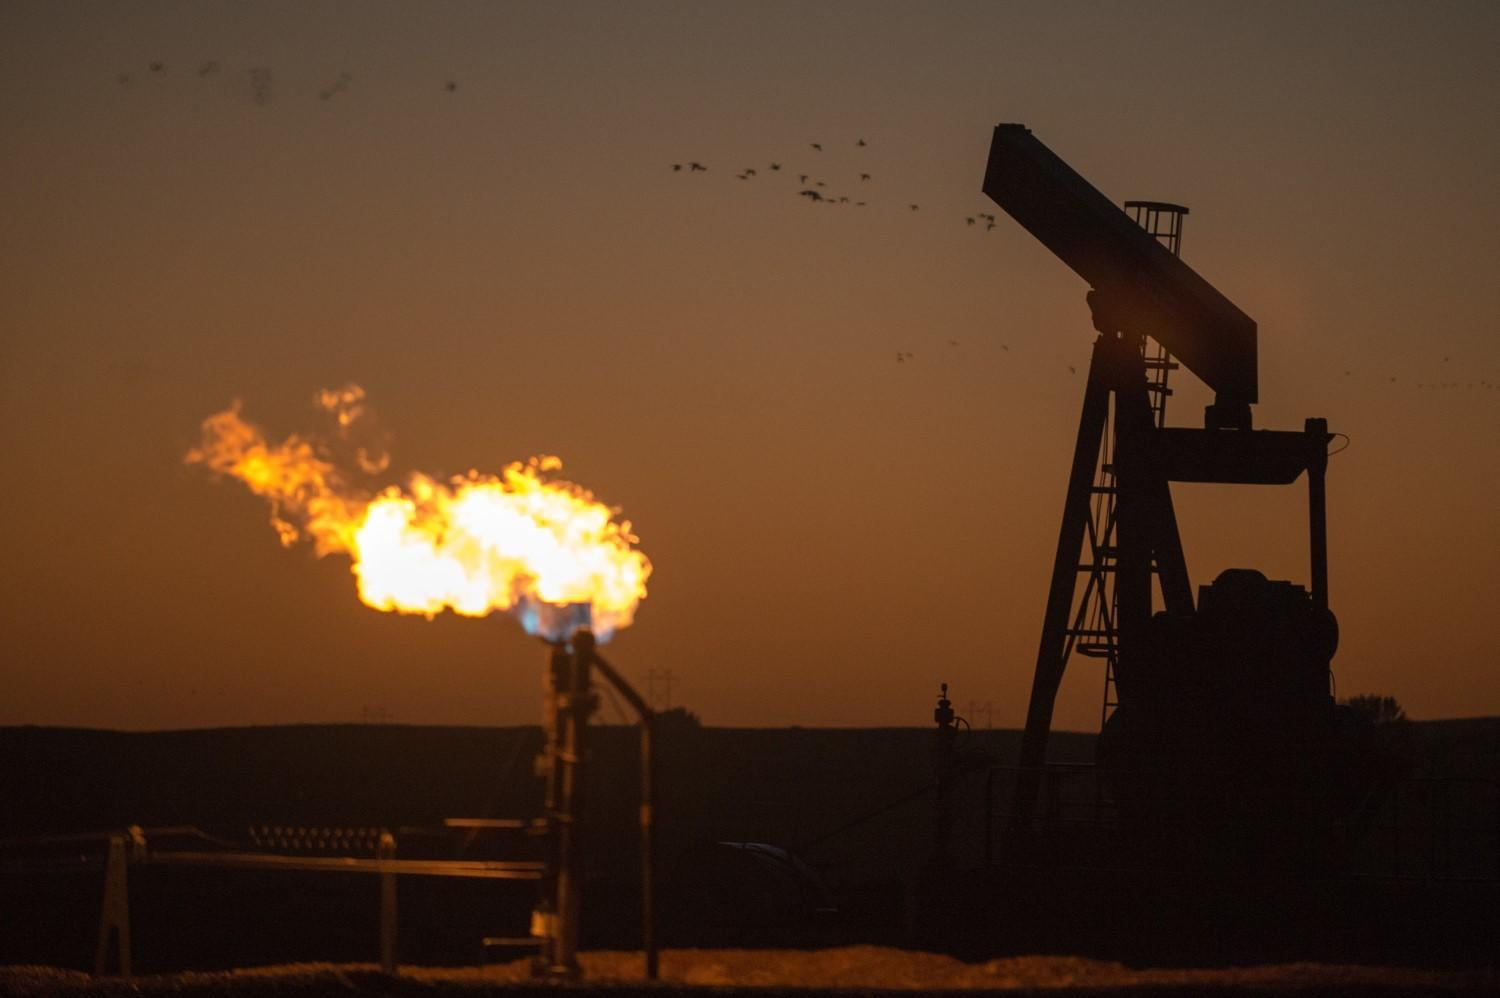 Equinor's total flaring down in 2020